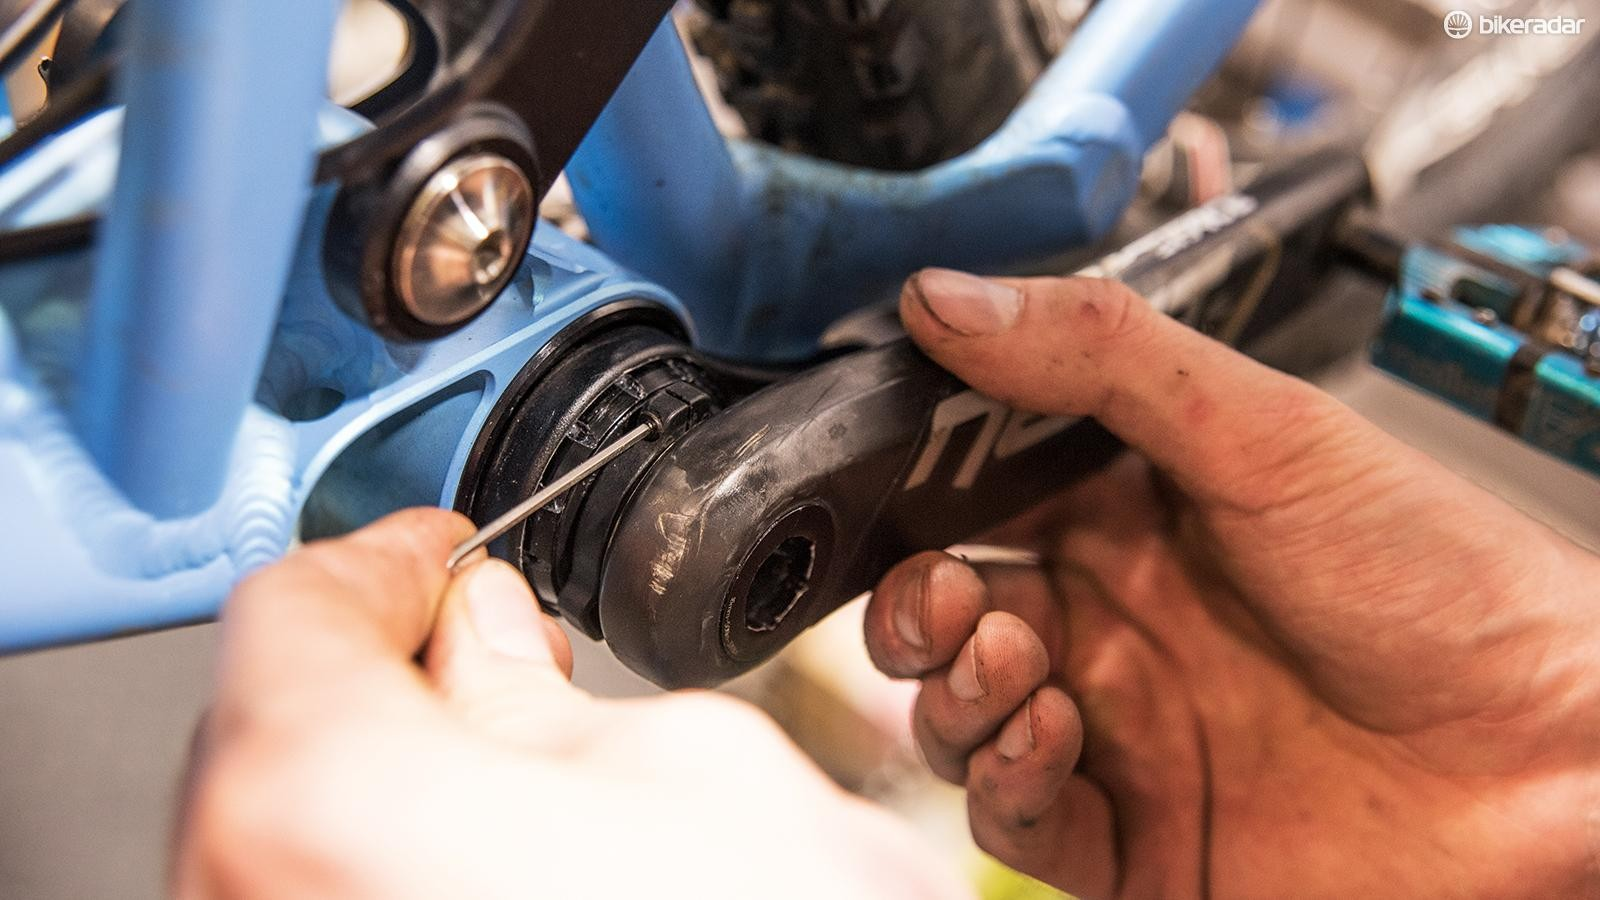 Check the crank arms are free of play and turn smoothly